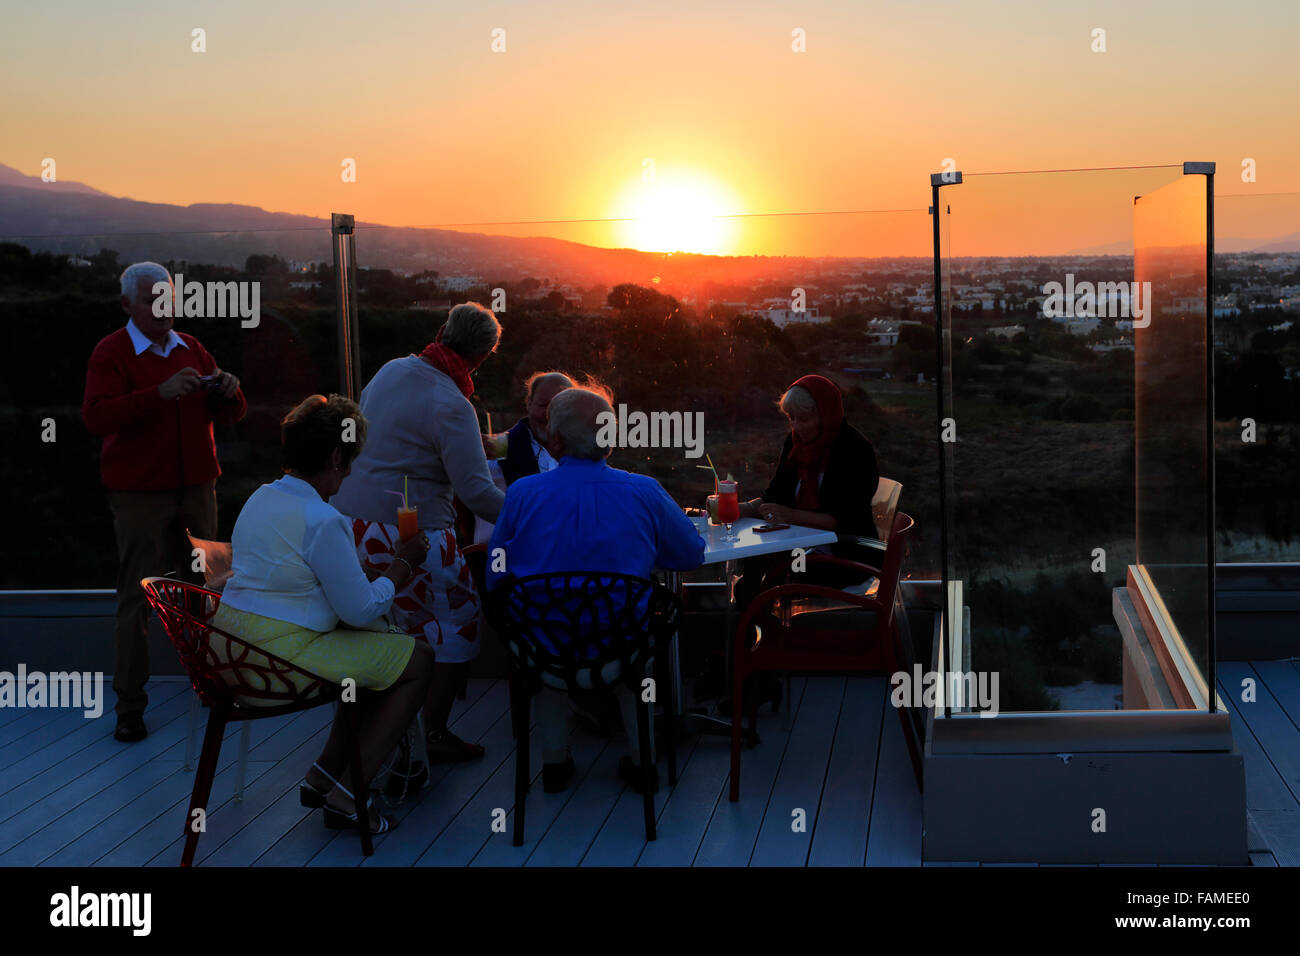 Sunset, Red Loft Rooftop Bar, Kipriotis Panorama Hotel, Kos Town, Kos Island, Dodecanese group of islands, South - Stock Image